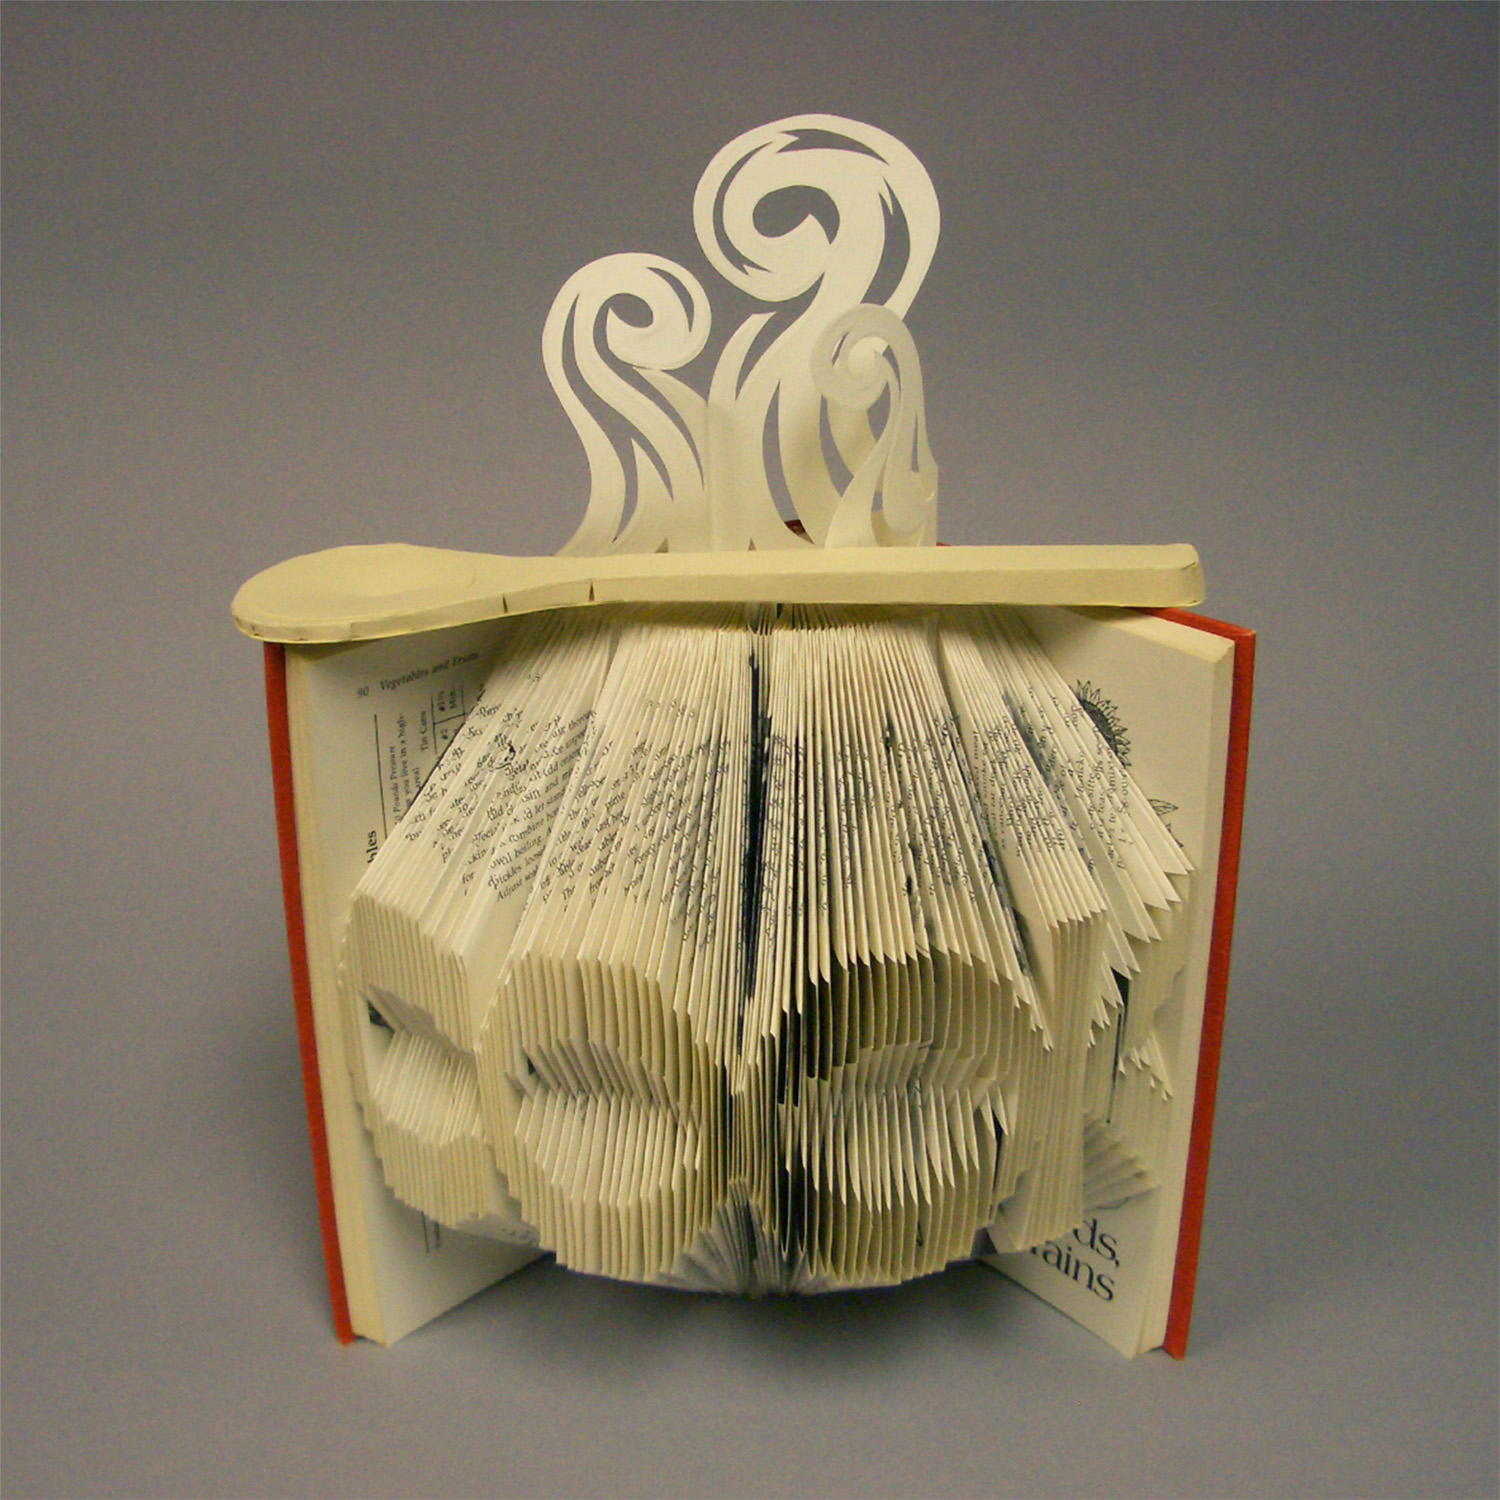 altered book with the word cook folded into it